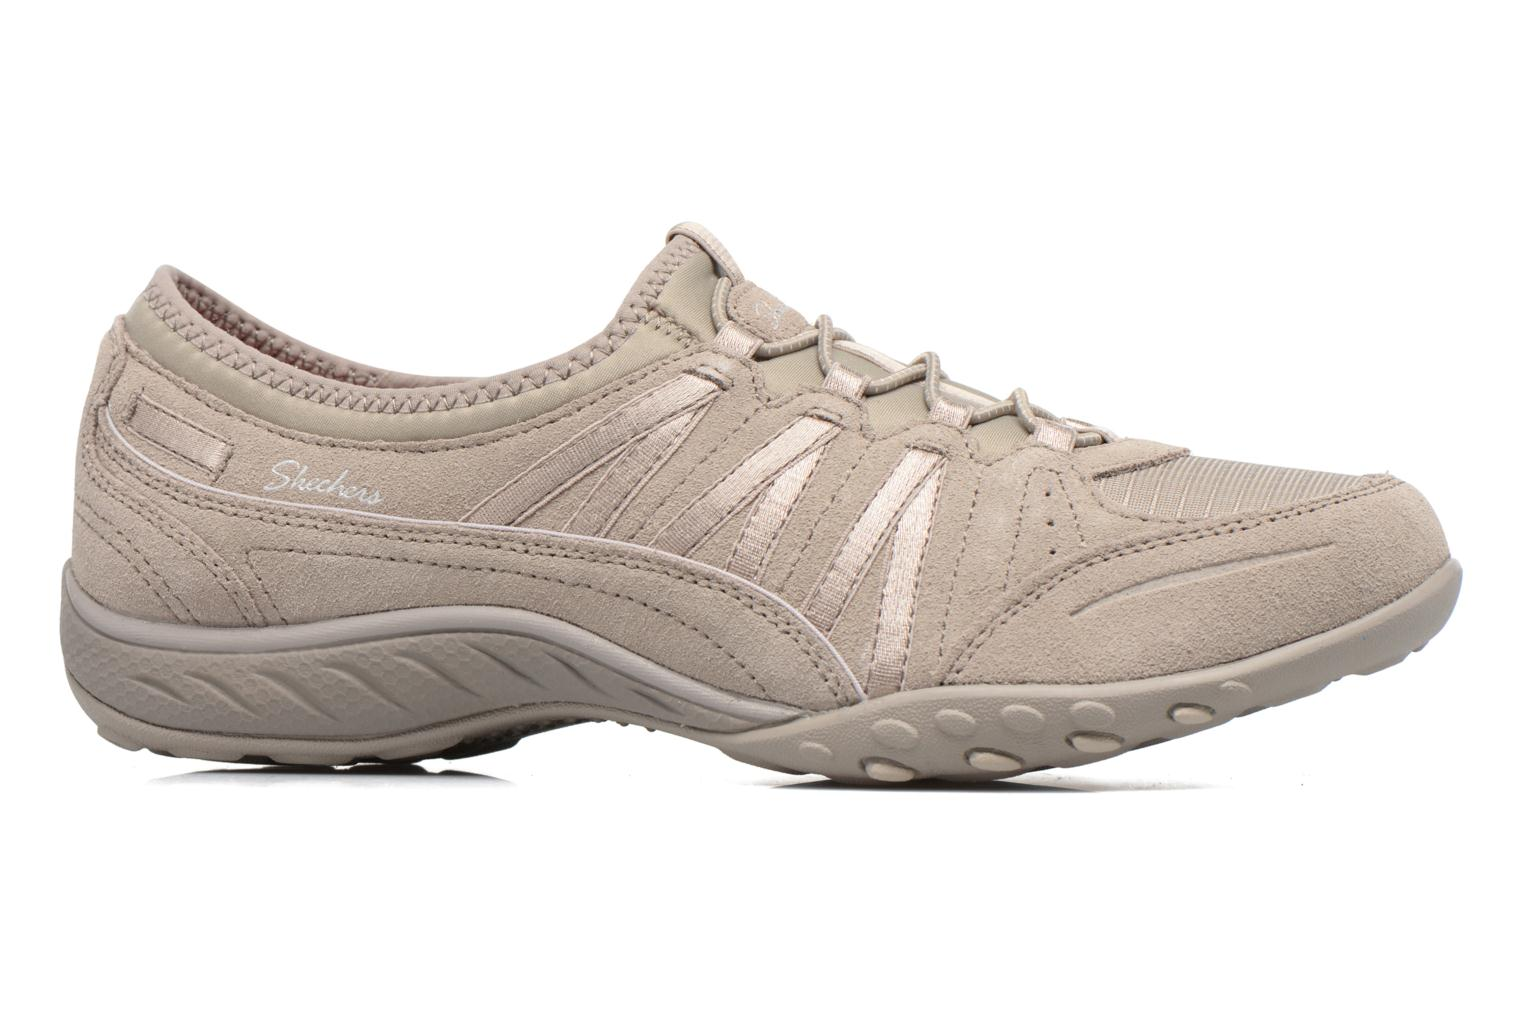 Baskets Skechers Breathe-Easy - Moneybags Gris vue derrière